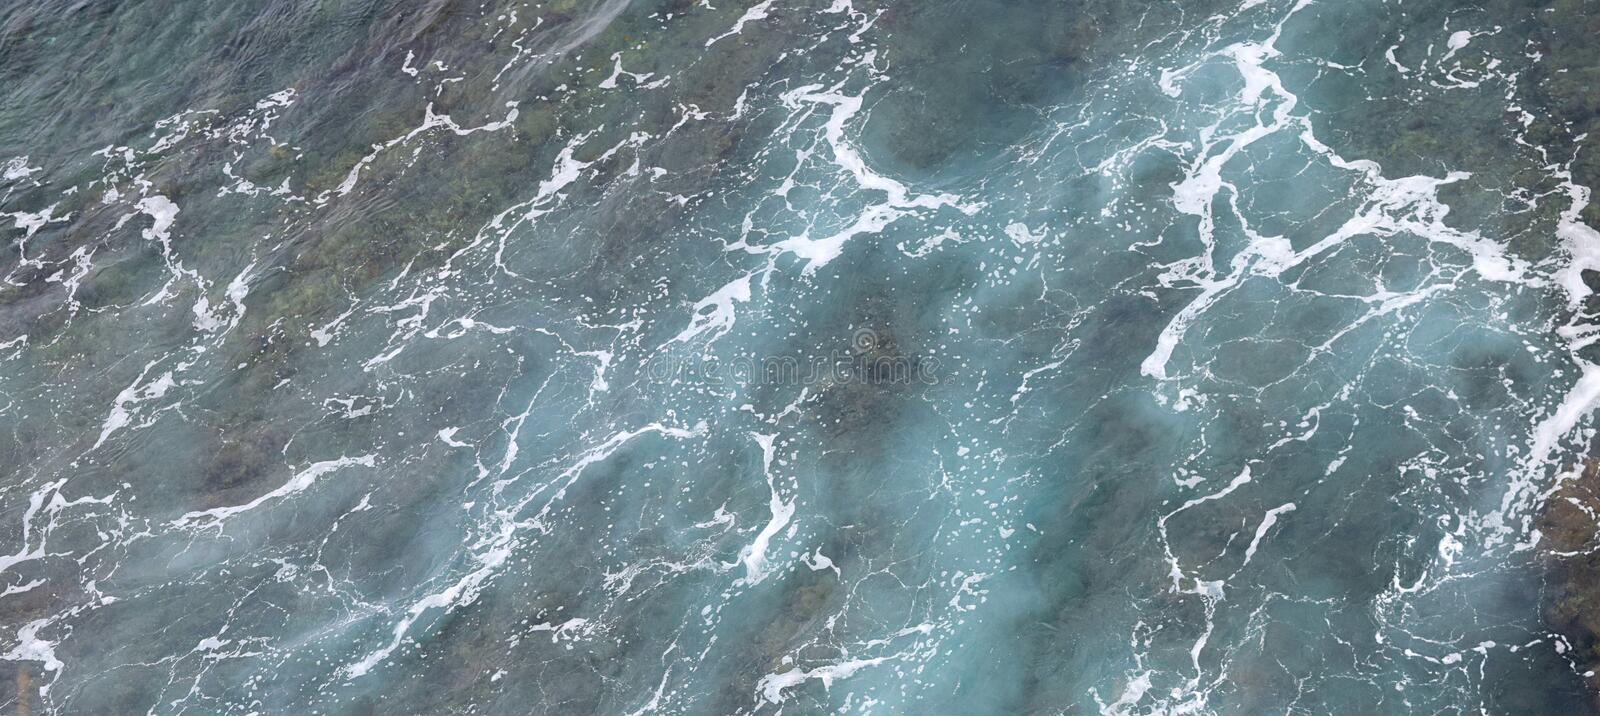 Foam and Waves of Greenish Blue Ocean Water - Abstract Natural Aqua Background and Texture royalty free stock photo